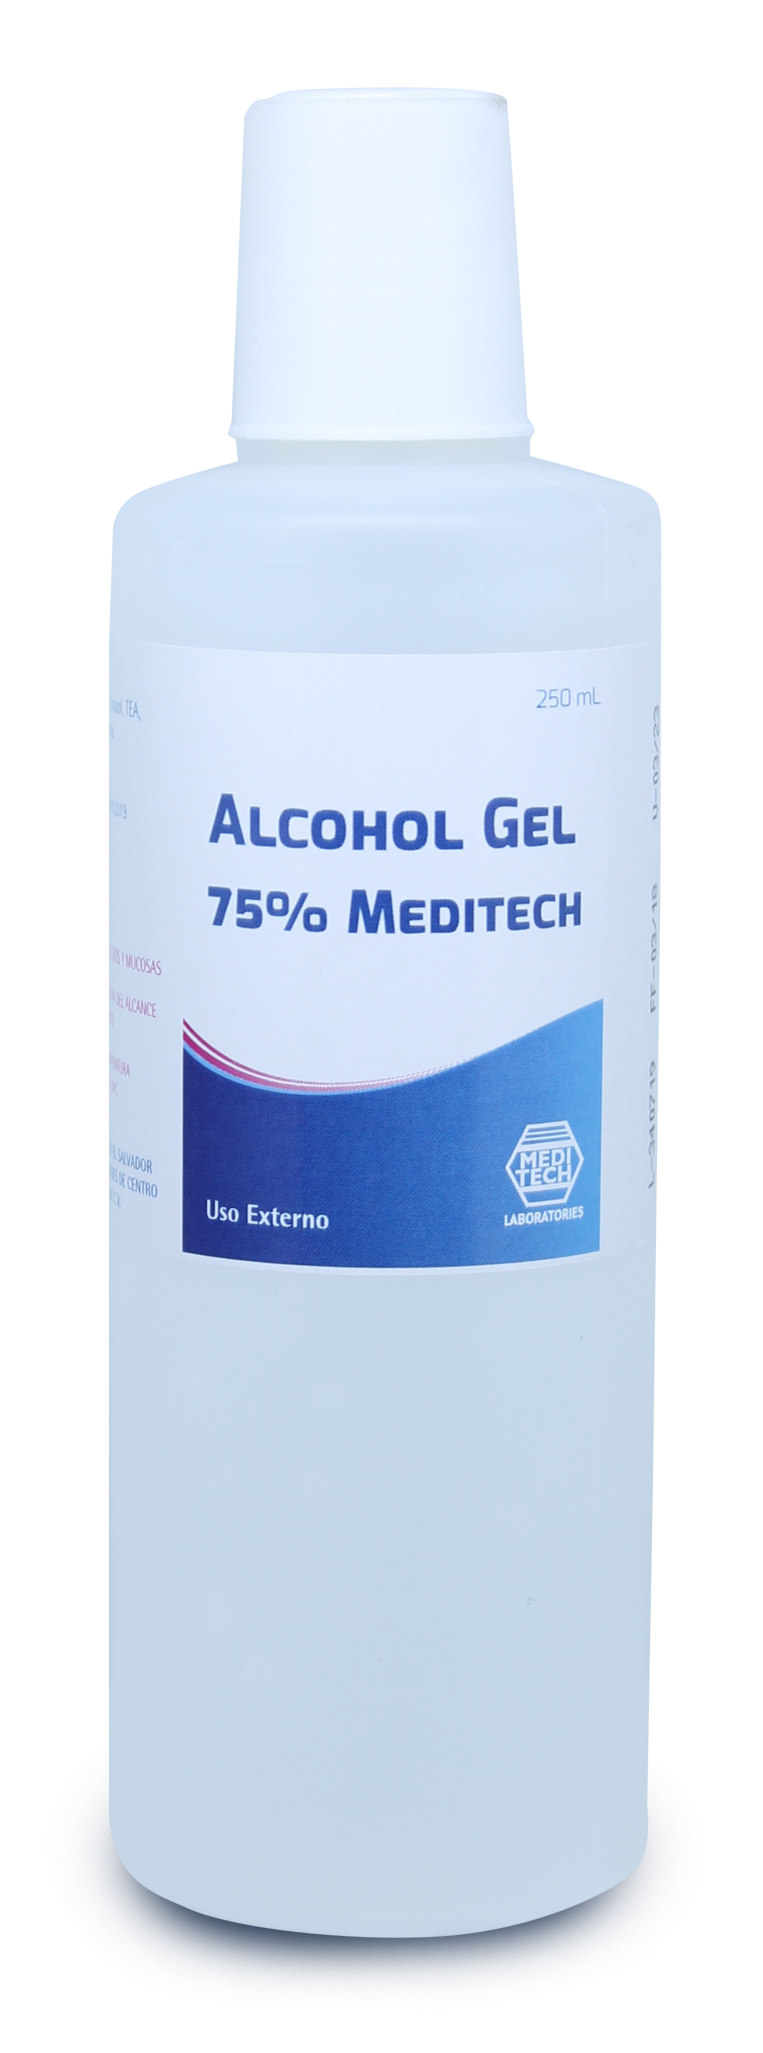 Alcohol Gel 75% Meditech 250 ml